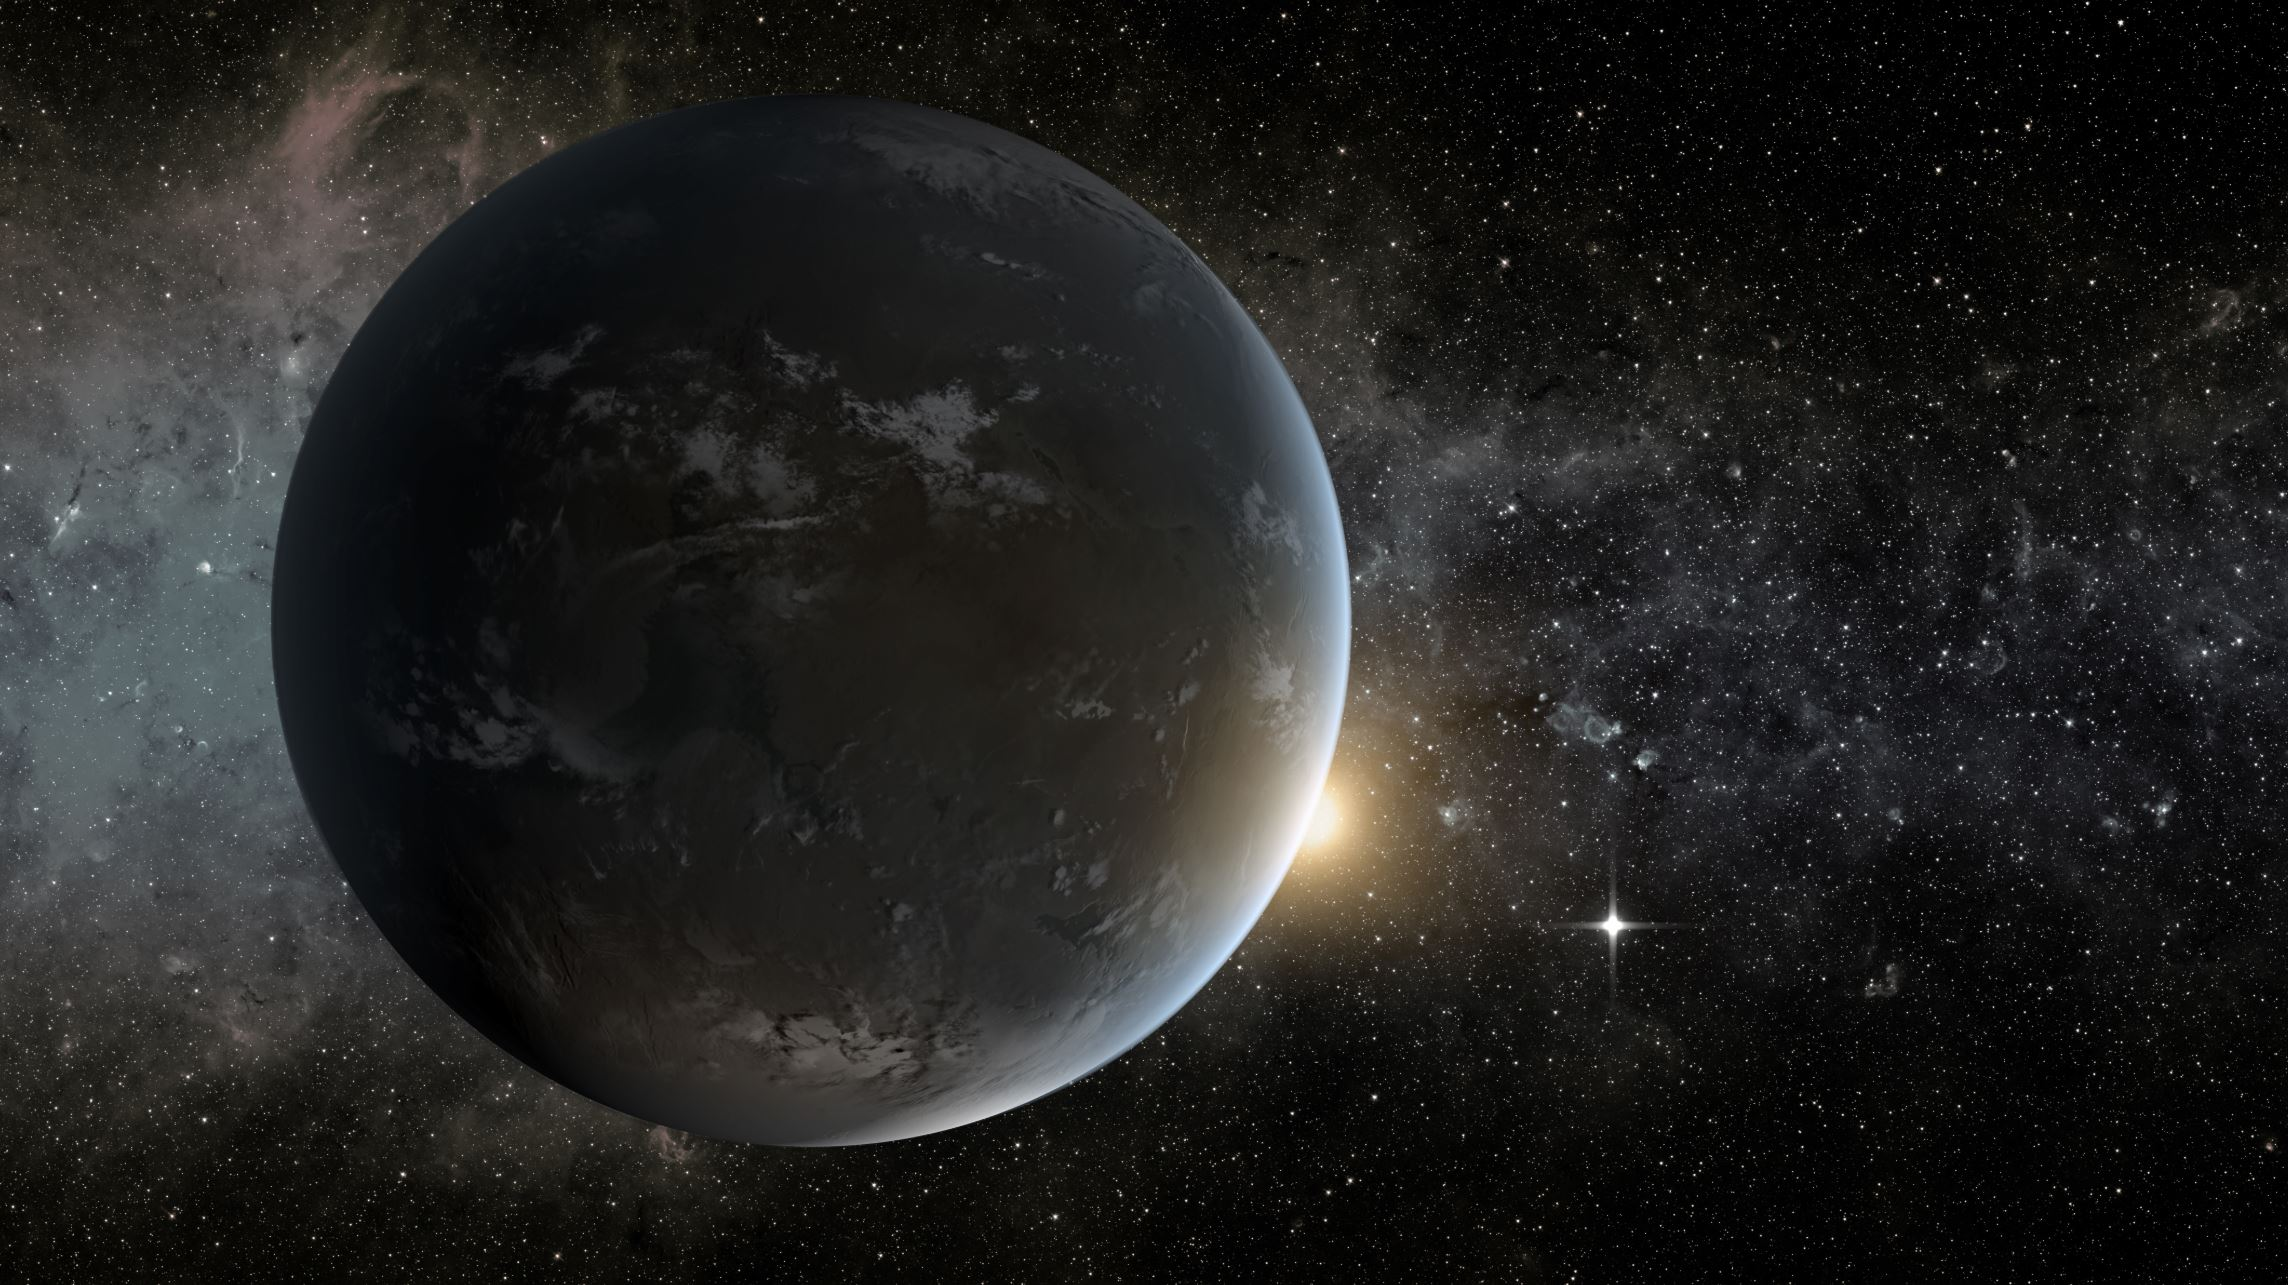 This is an artist's concept of a planet orbiting in the habitable zone of a K star. - Image Credits: NASA Ames/JPL-Caltech/Tim Pyle